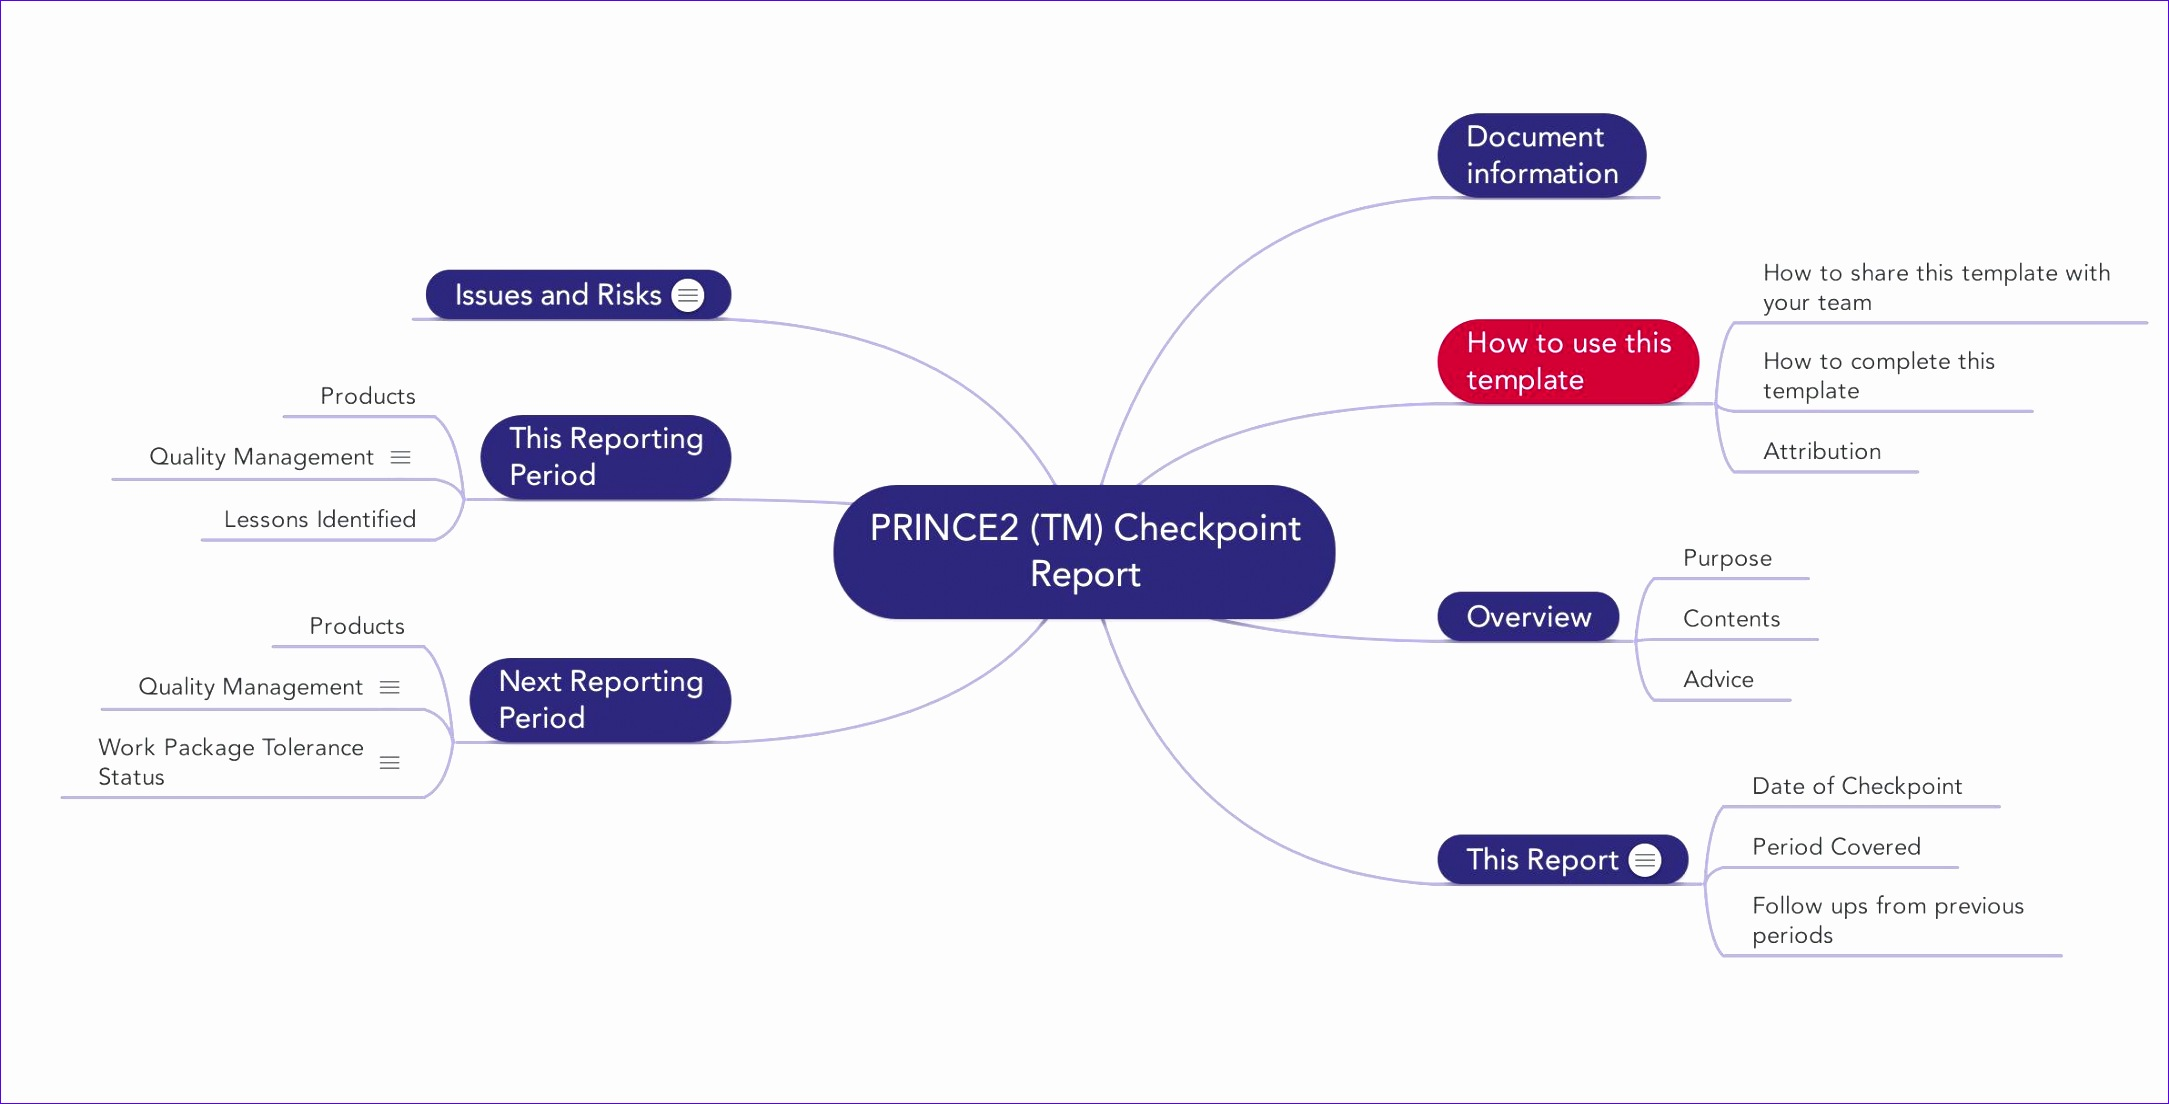 PRINCE2 TM Checkpoint Report